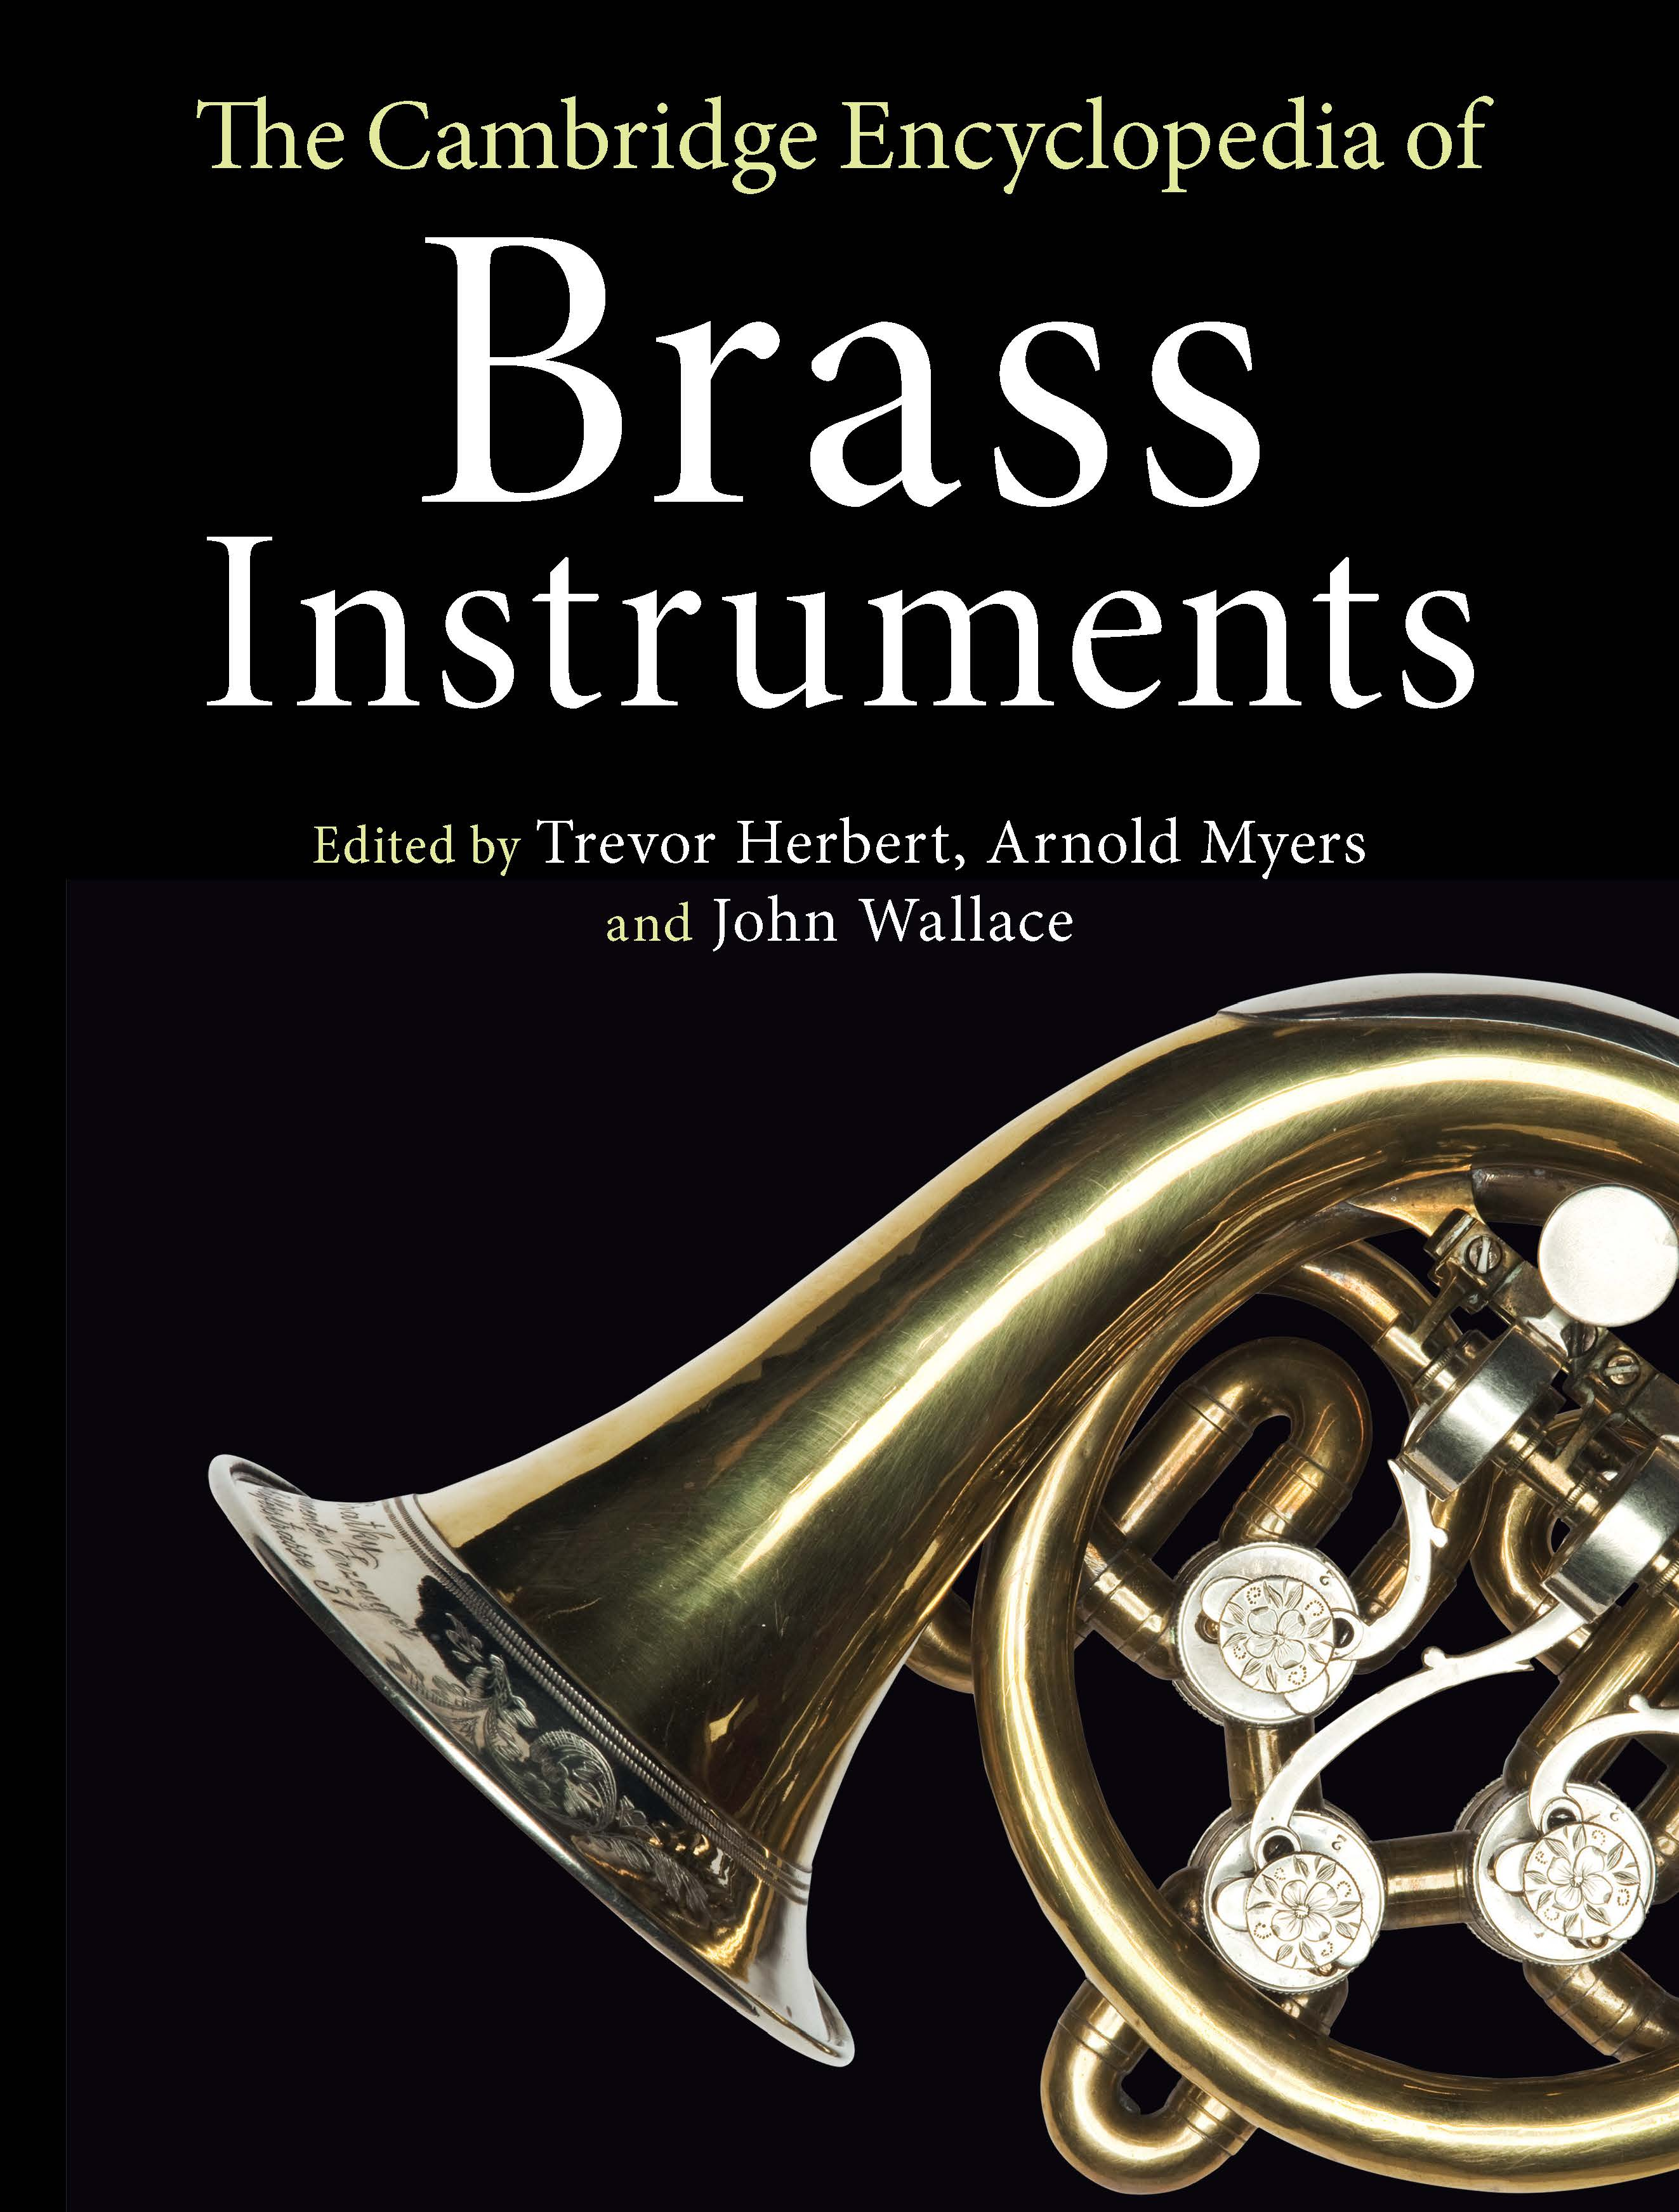 Cambridge Encyclopedia of Brass Instruments Now Available